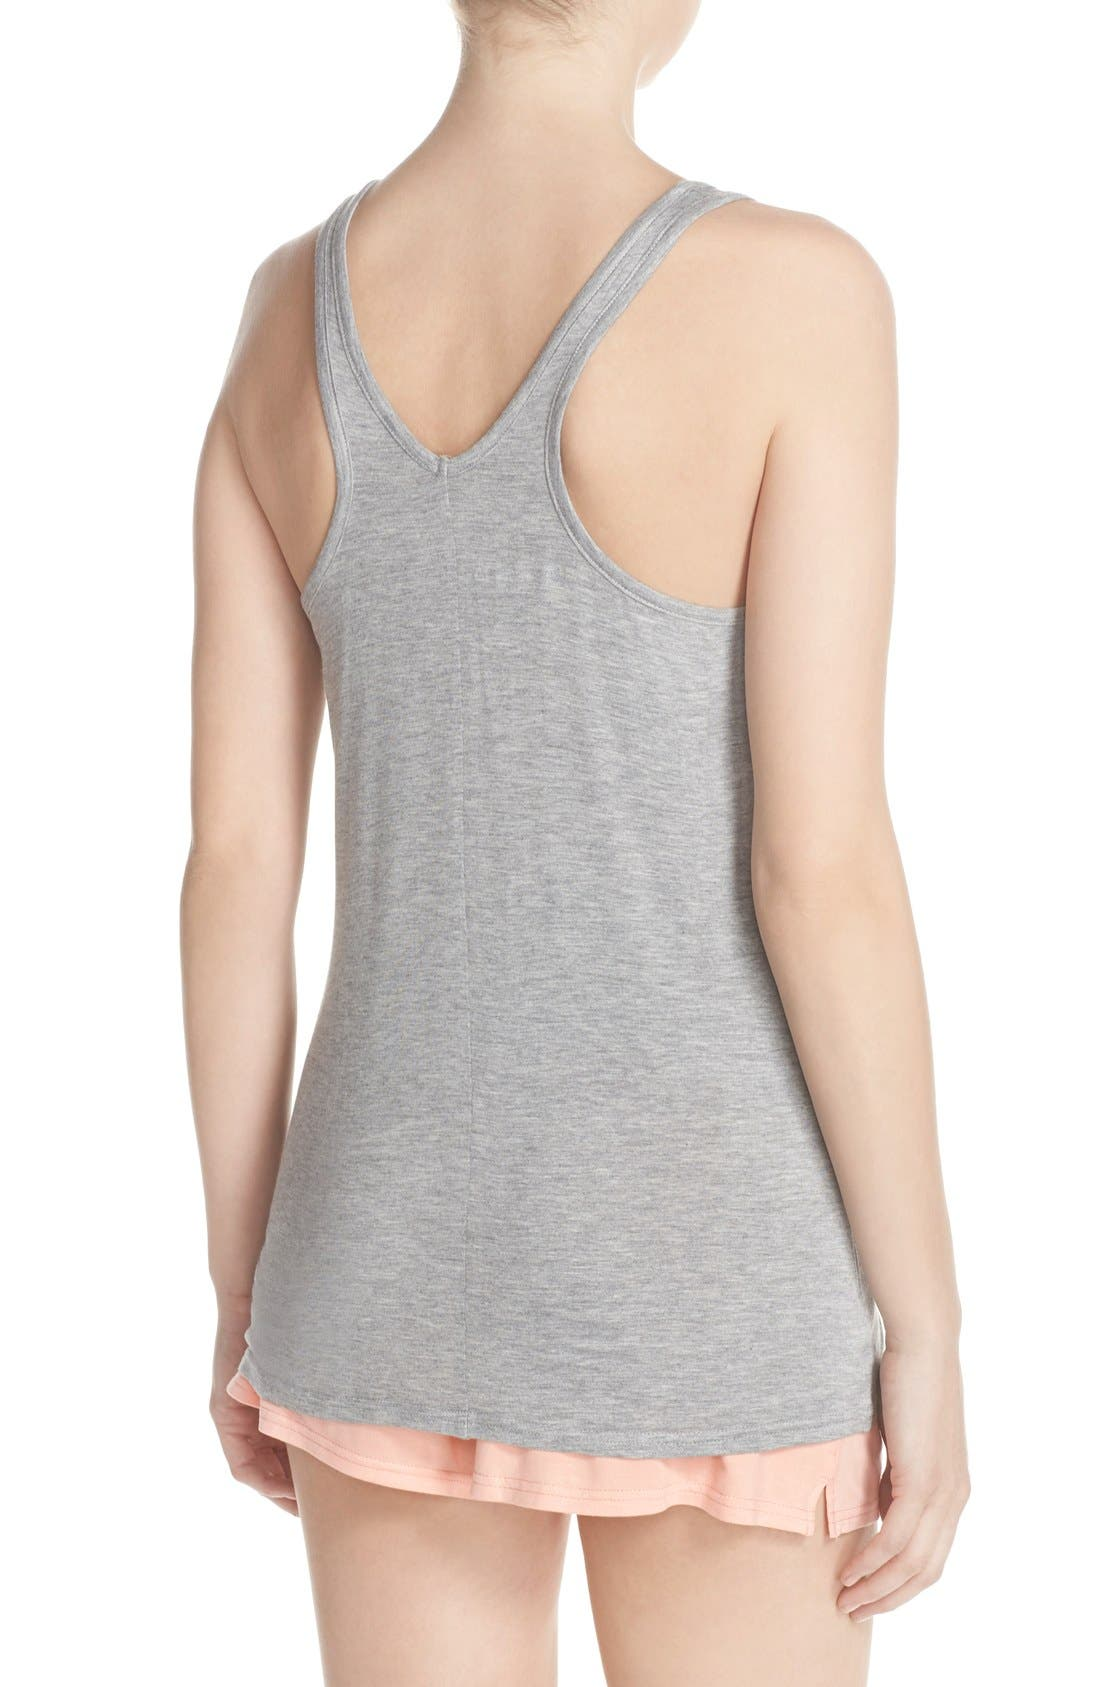 Knotted Tank & Pajama Shorts,                             Alternate thumbnail 2, color,                             Light Grey/ Peach